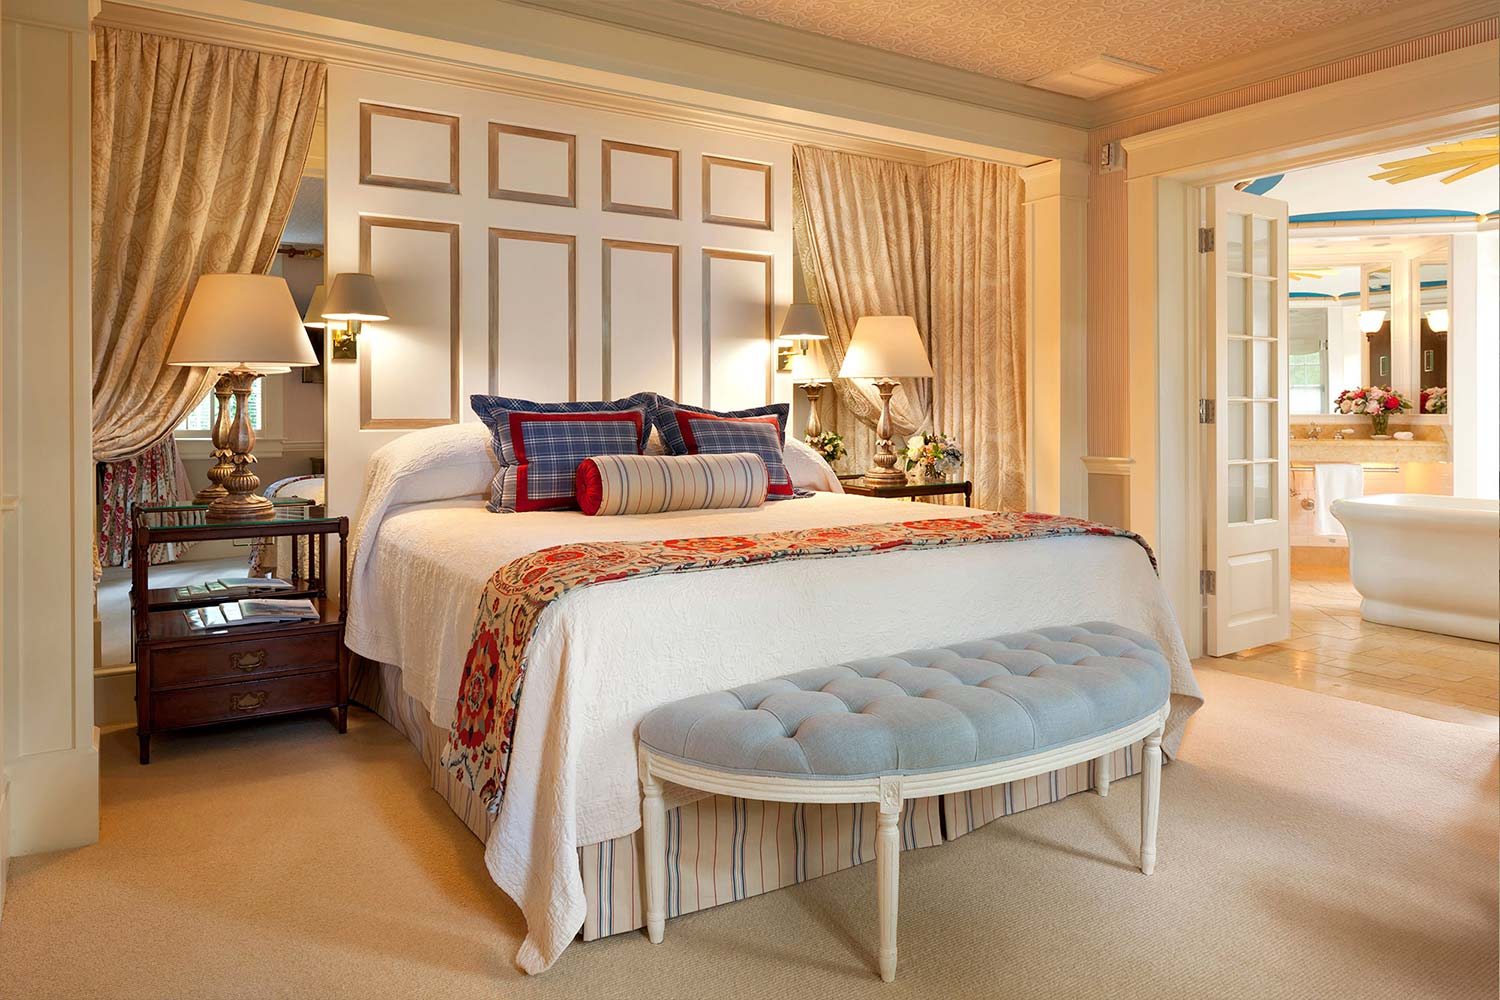 The master bedroom of room 15.